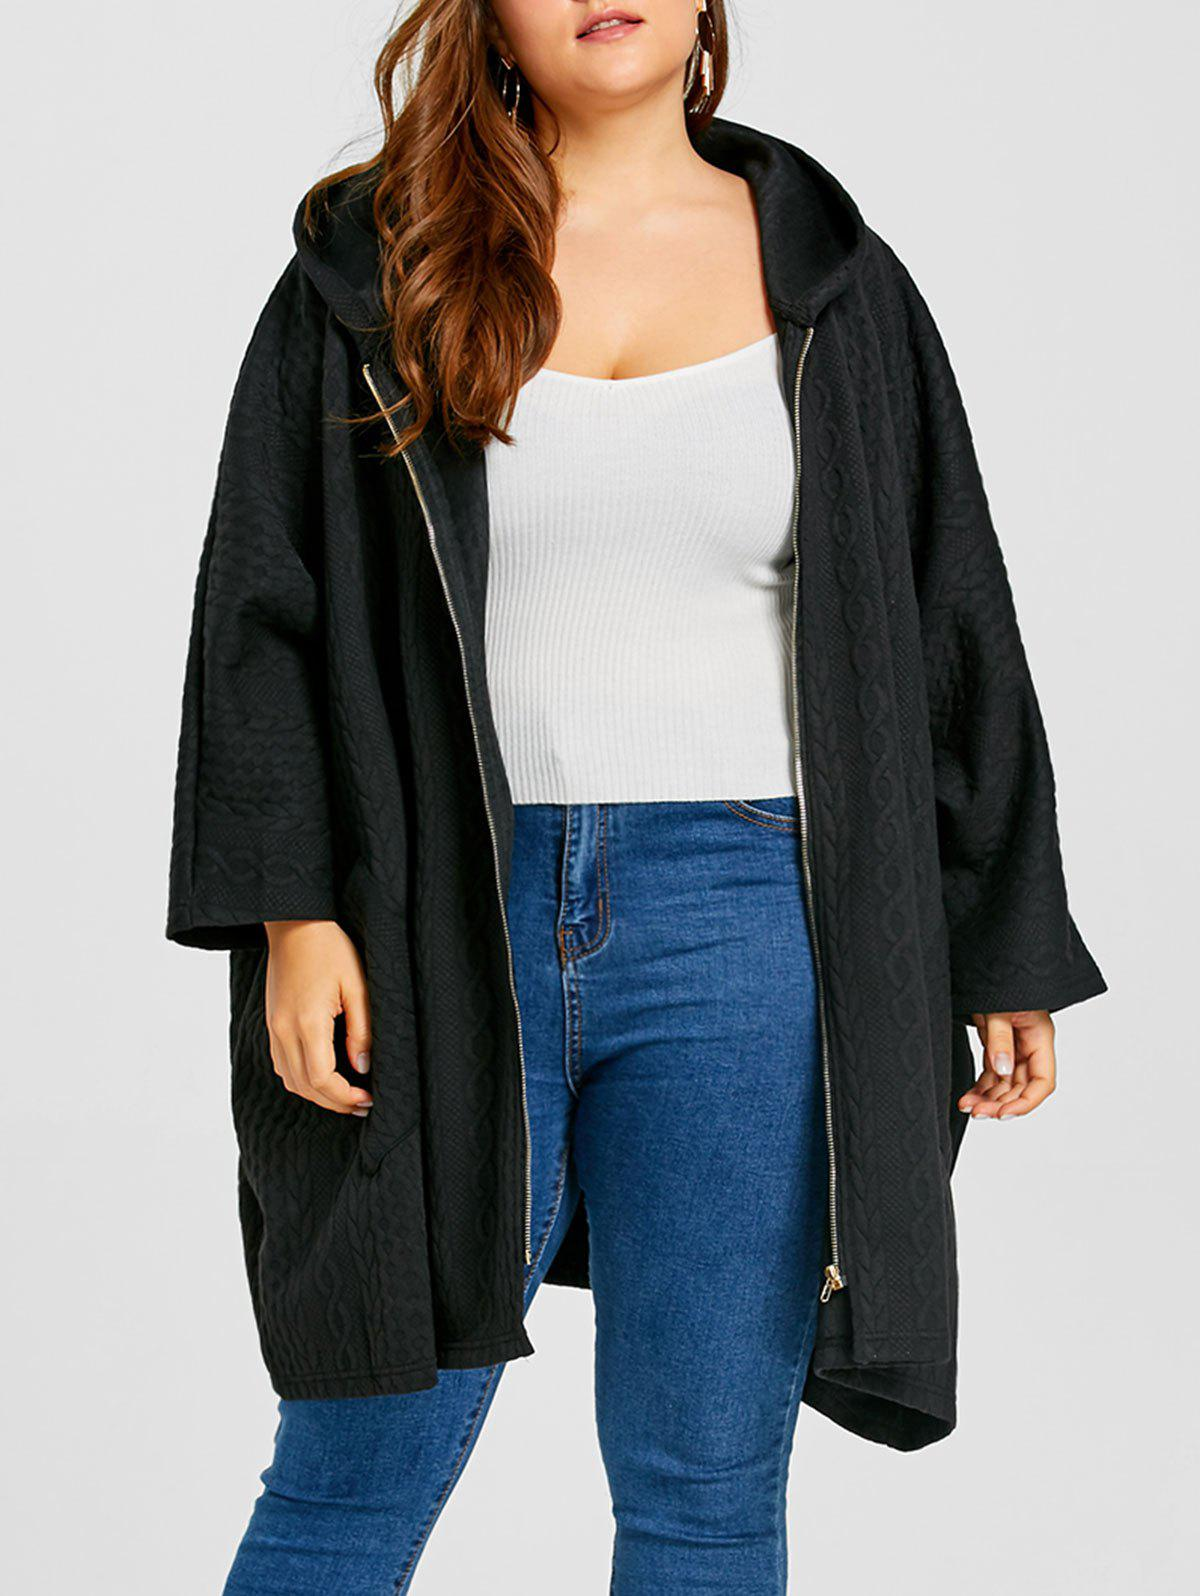 Jacquard Plus Size Zipper Hooded Cloak Coat - BLACK ONE SIZE